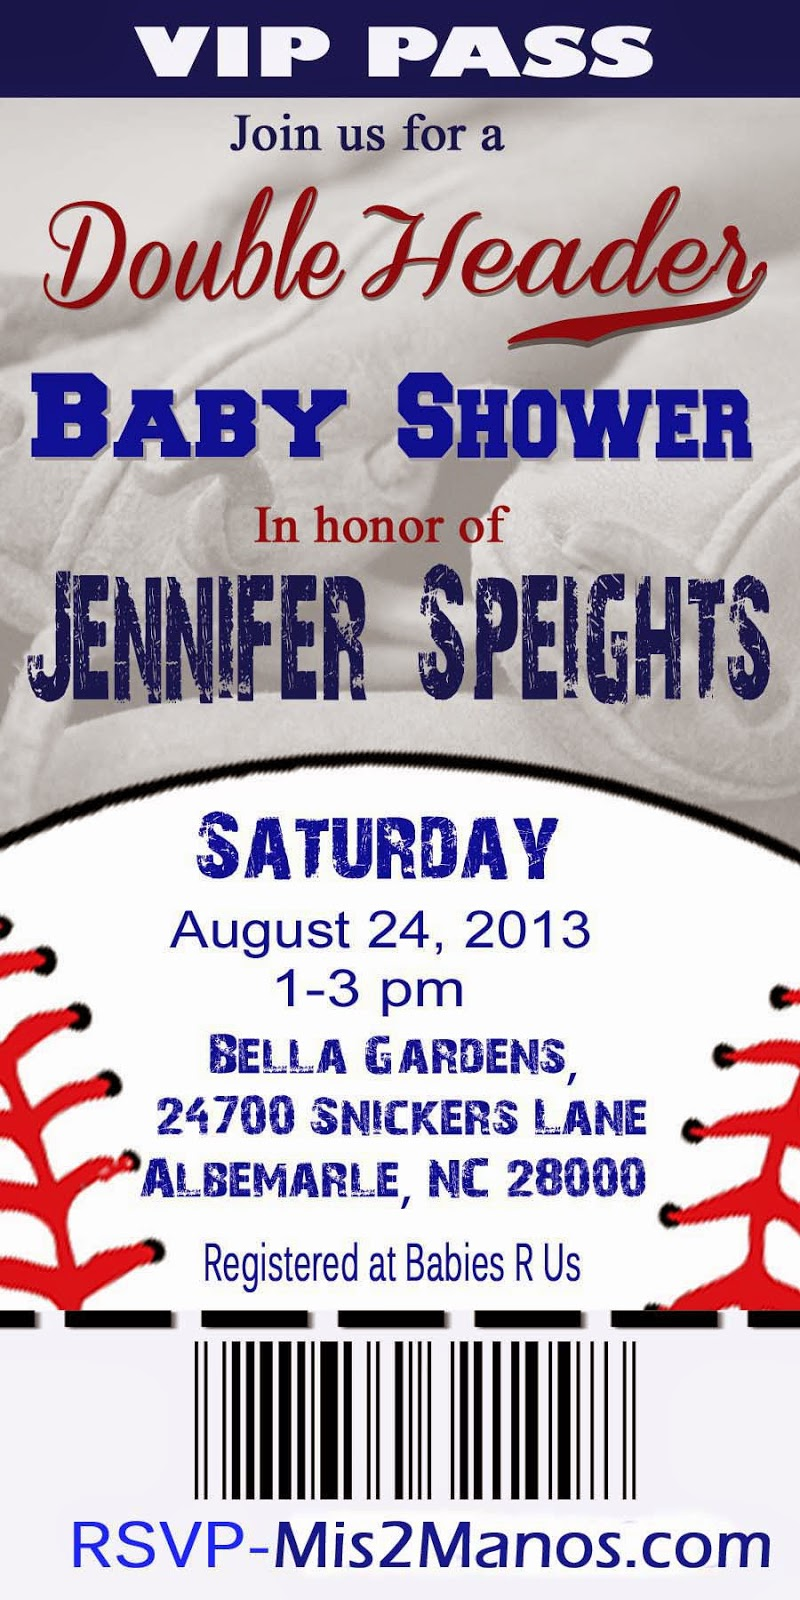 Mis 2 Manos Made by My Hands BASEBALL BABY Shower Invitation